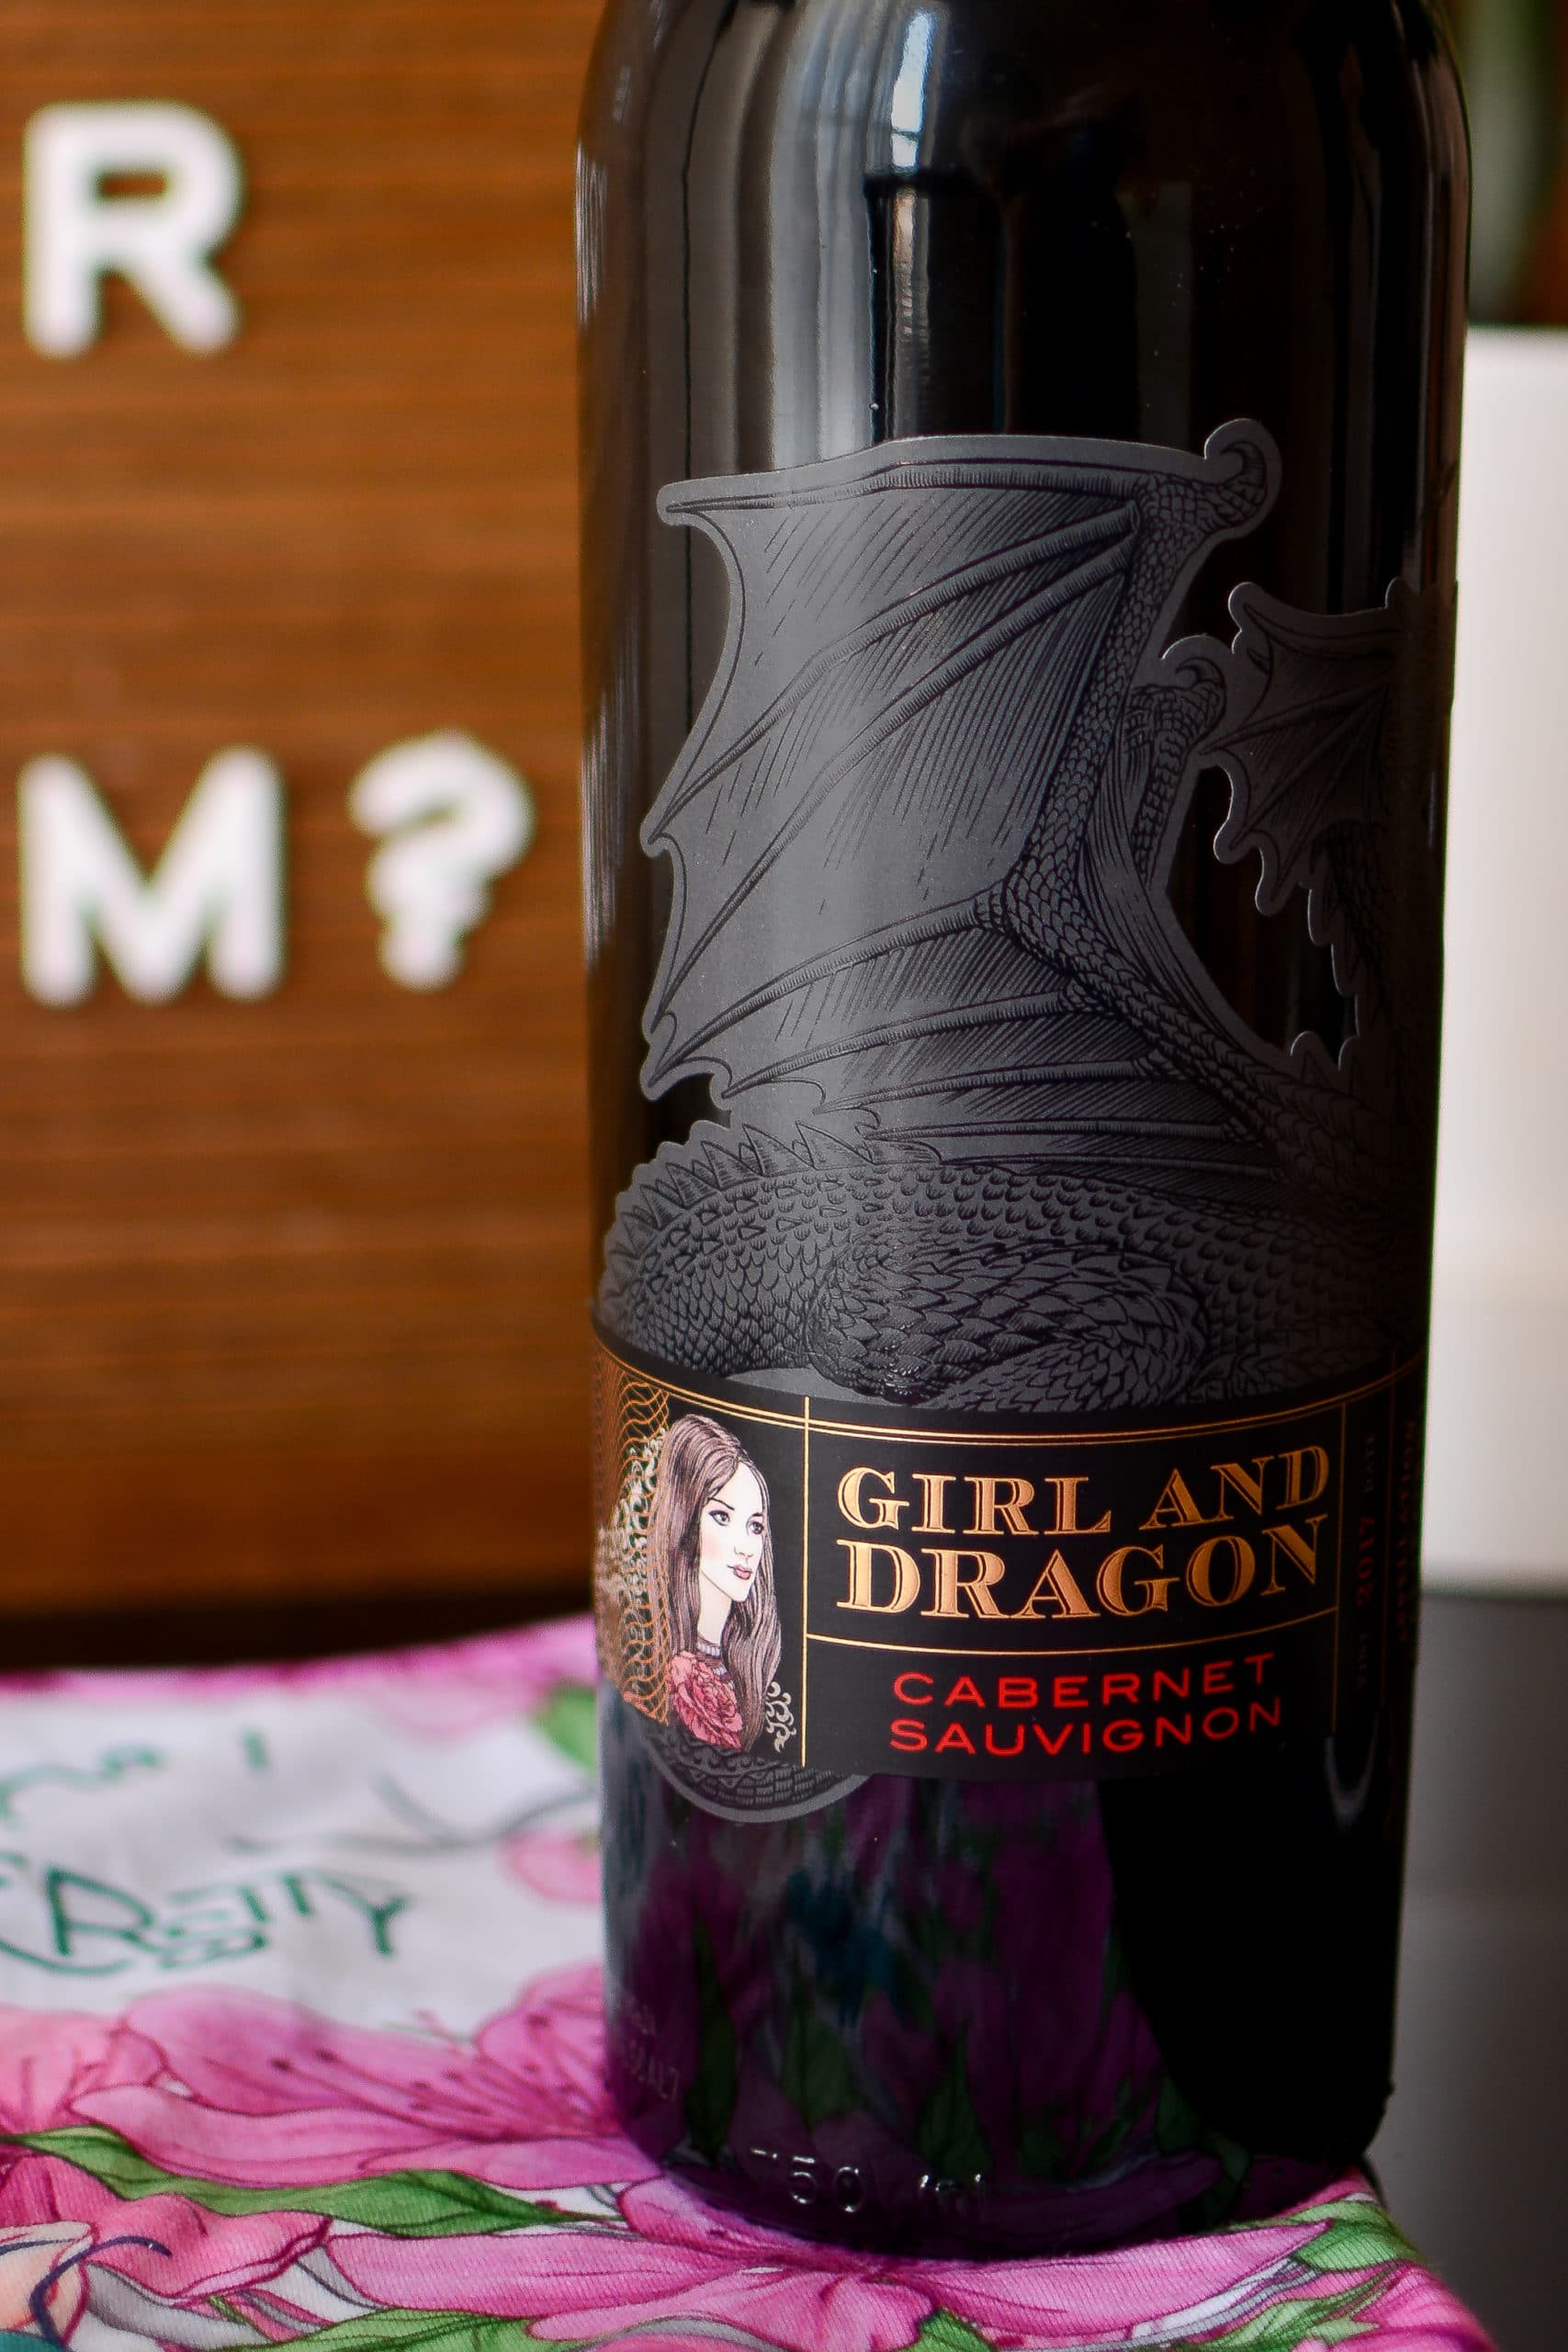 Empowered Princess Podcast Sleepover Series Mulan Girl and Dragon Wine Pairing Detail Picture